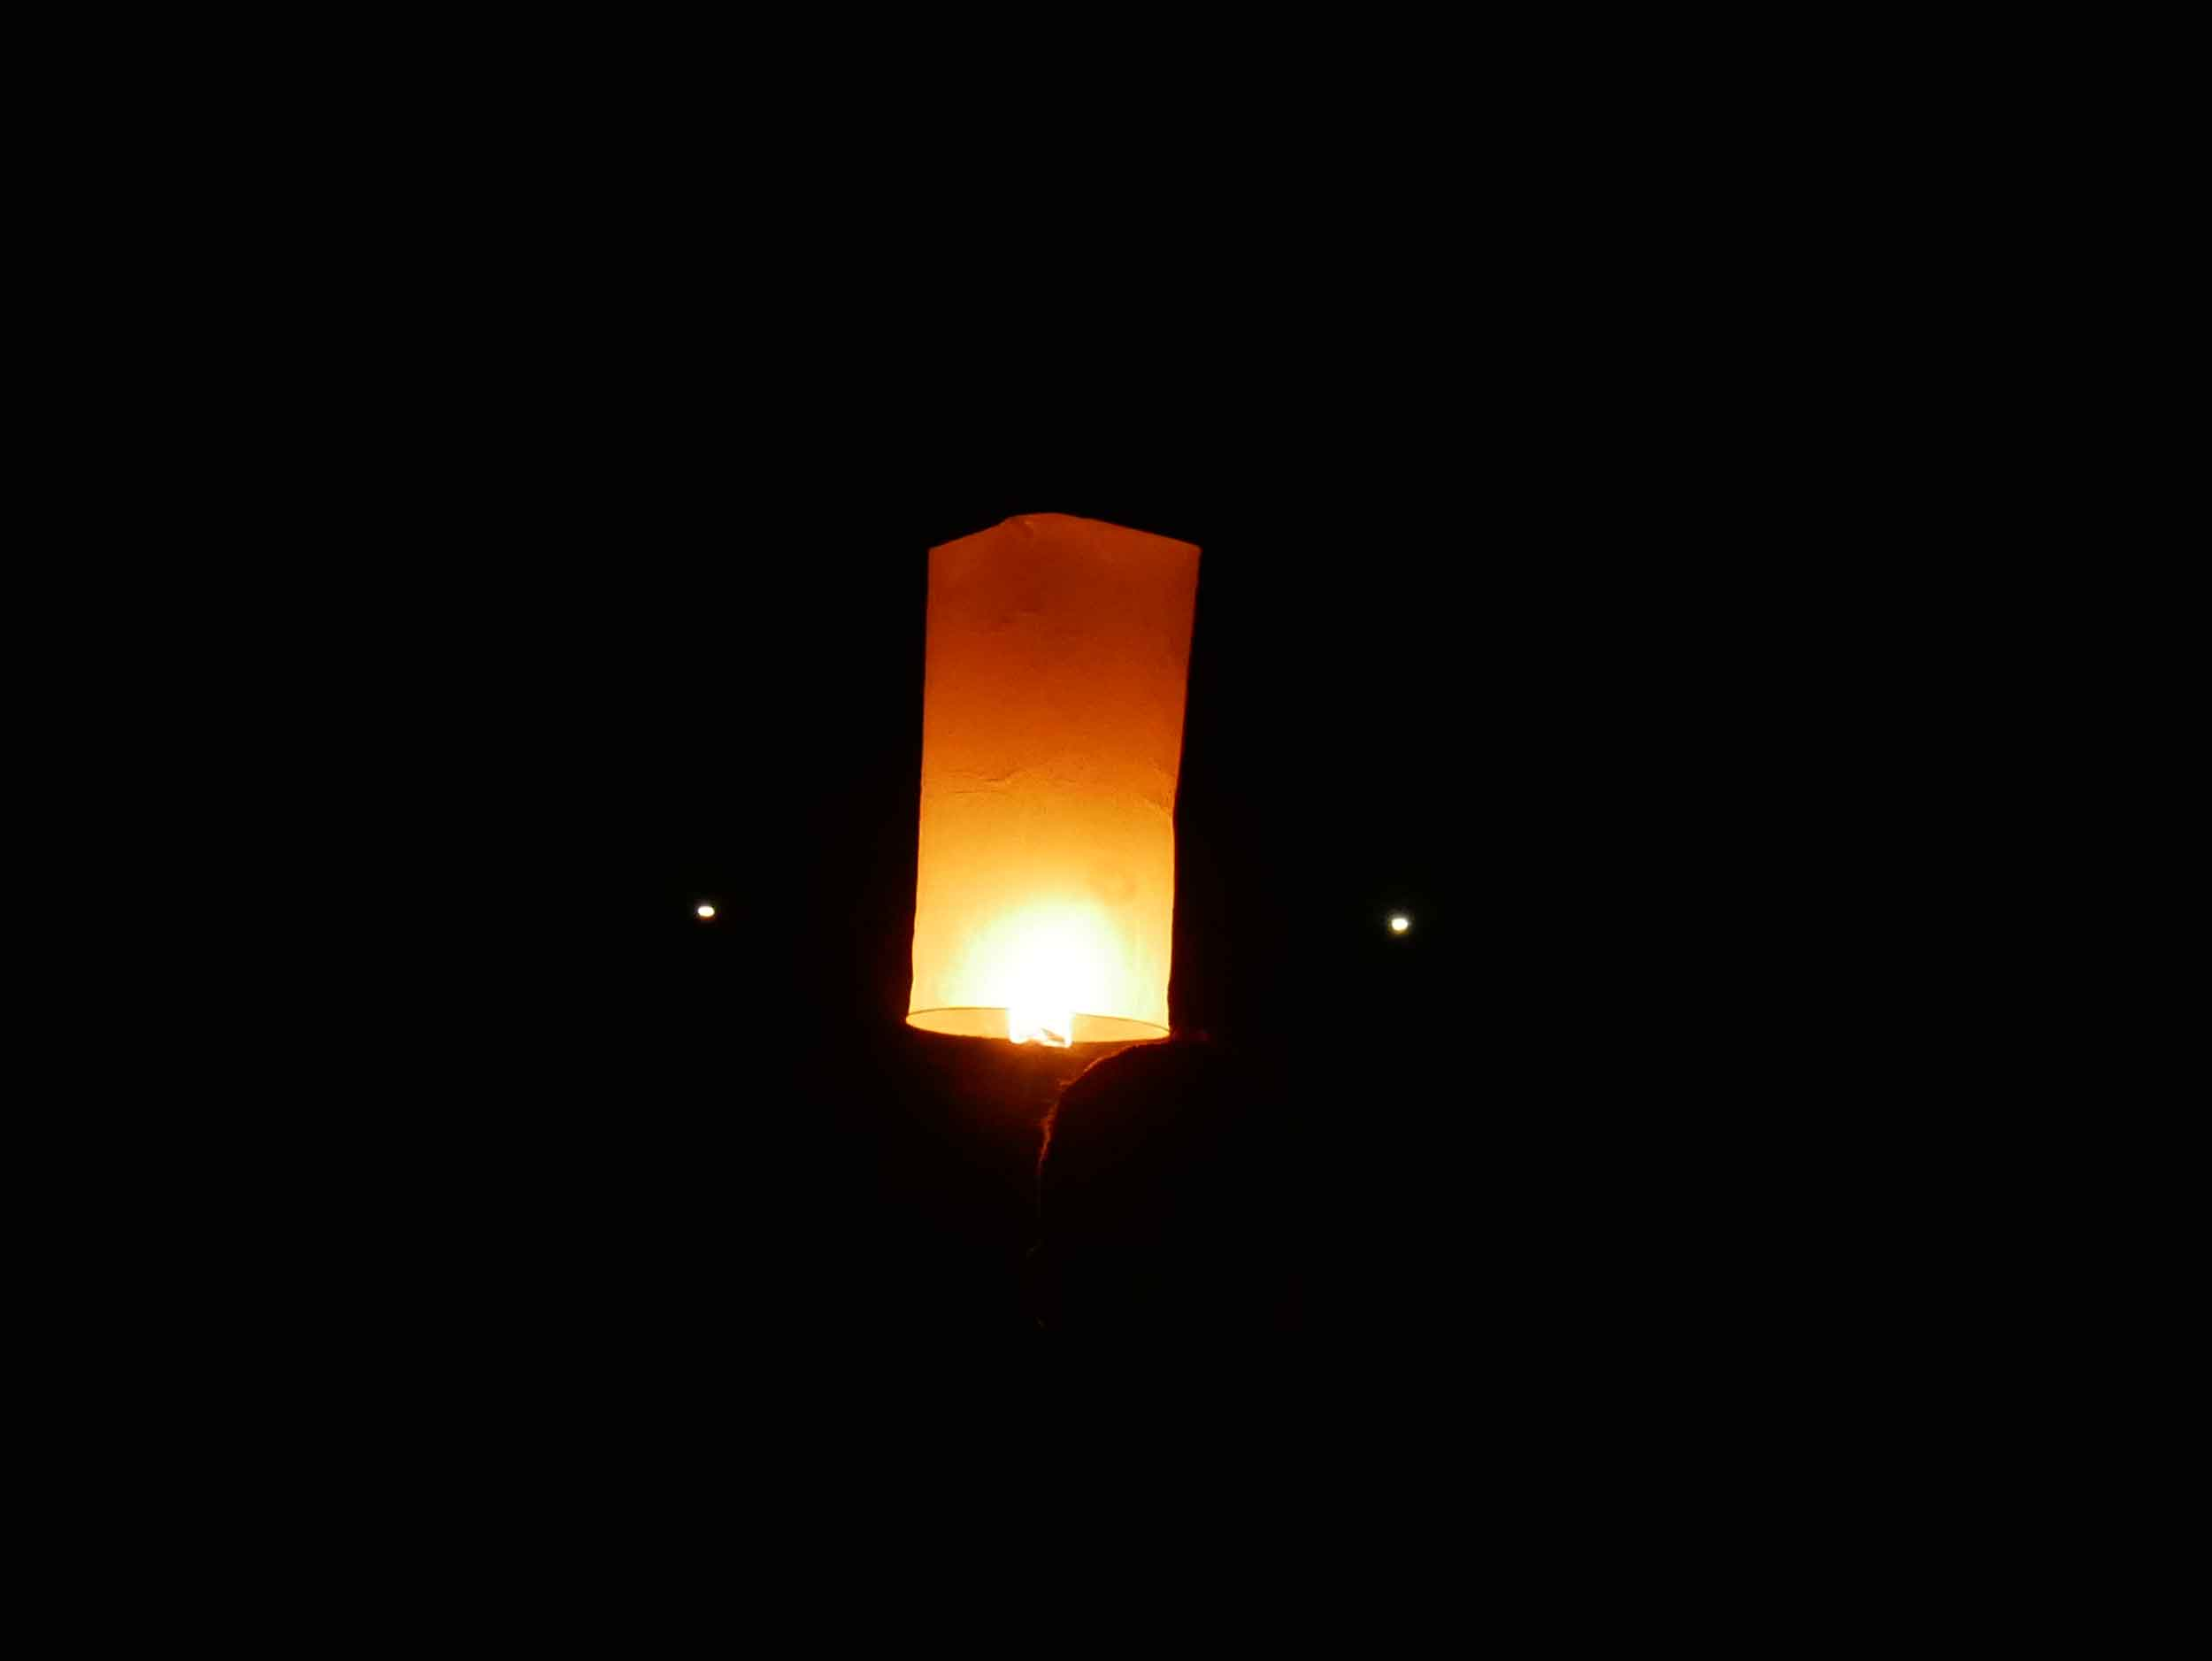 On our final night on Ko Lanta, we released floating lanterns into the night sky.